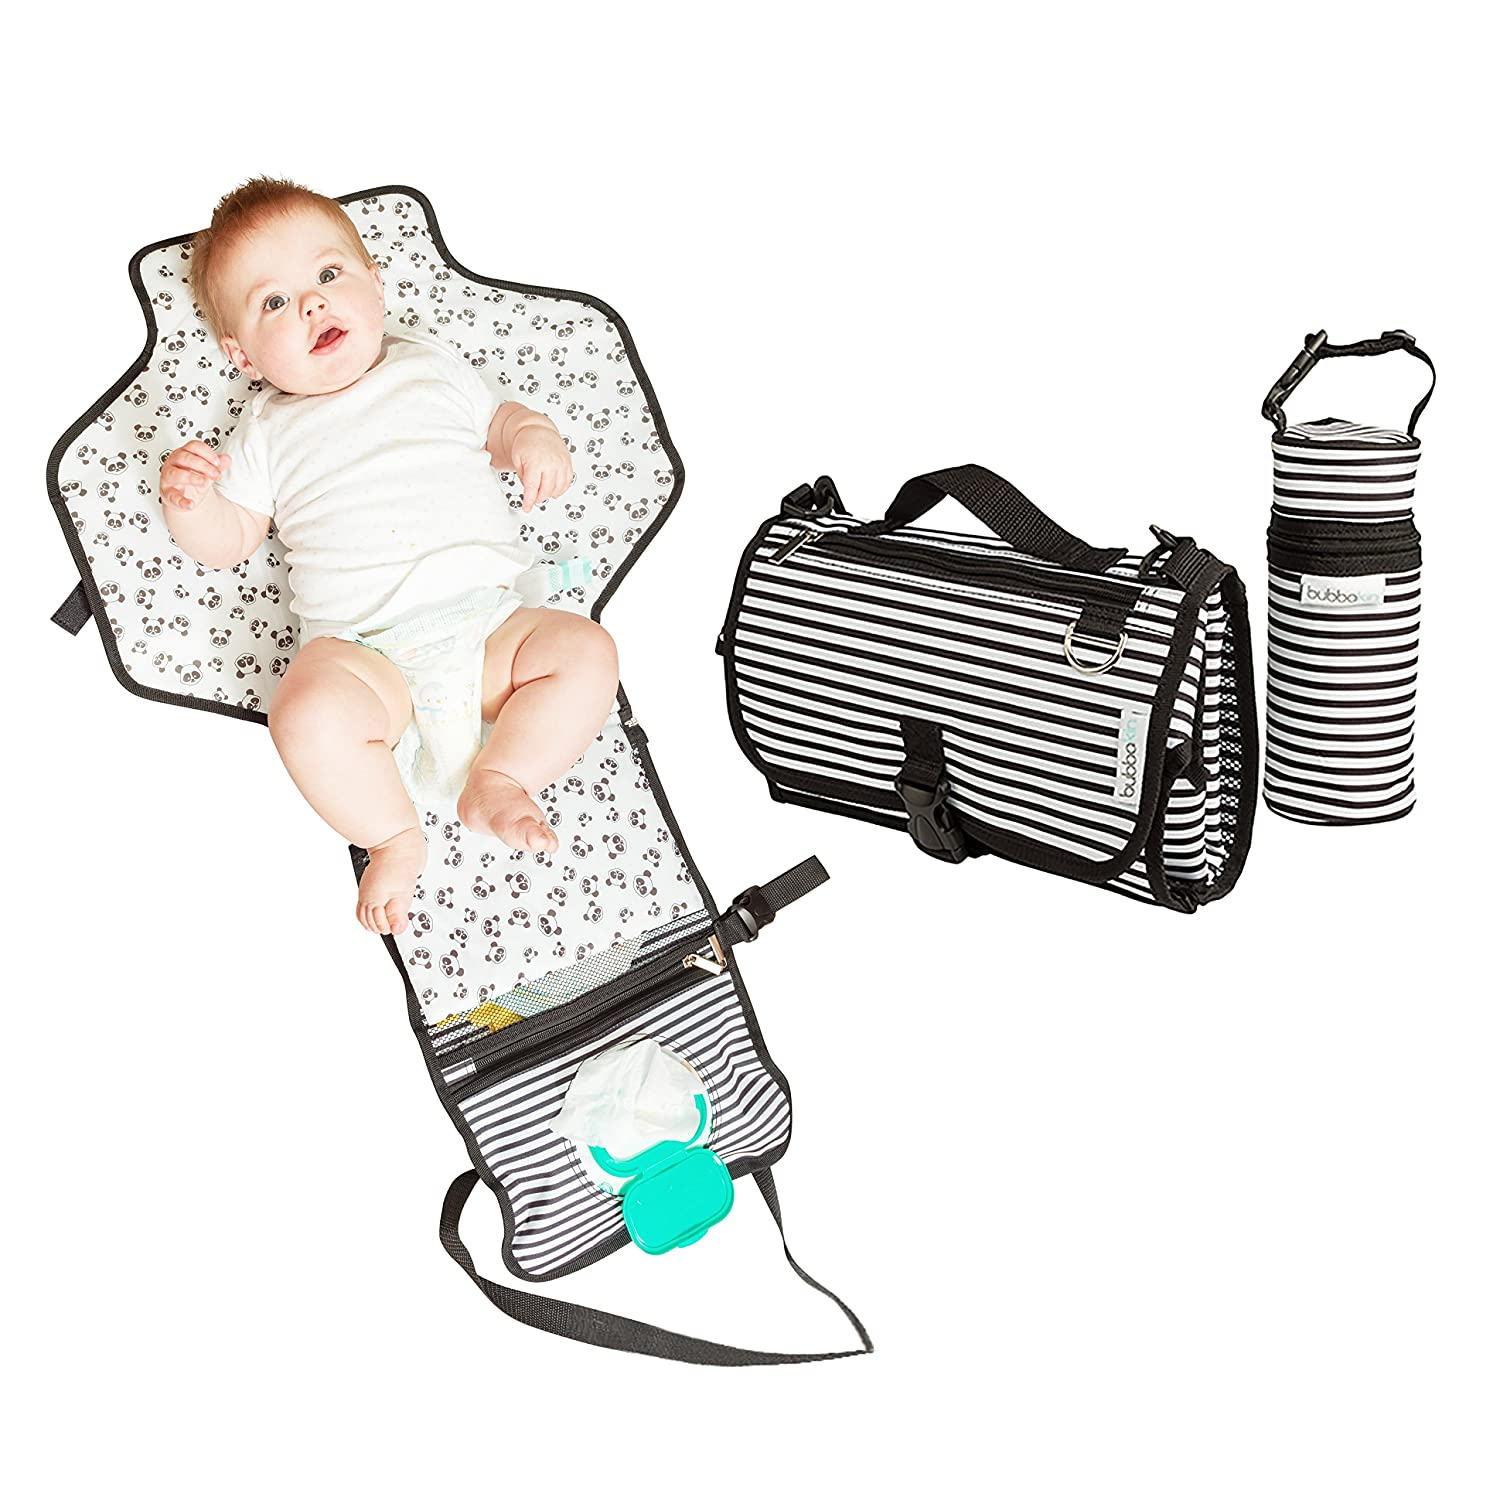 Portable Changing Mat with Insulated Bottle Bag | Waterproof Extra Large Cushioned Pillowed Baby Changing Bag | Holds Baby Wipes | Perfect for Newborns, Babies and Toddlers Bubbakin